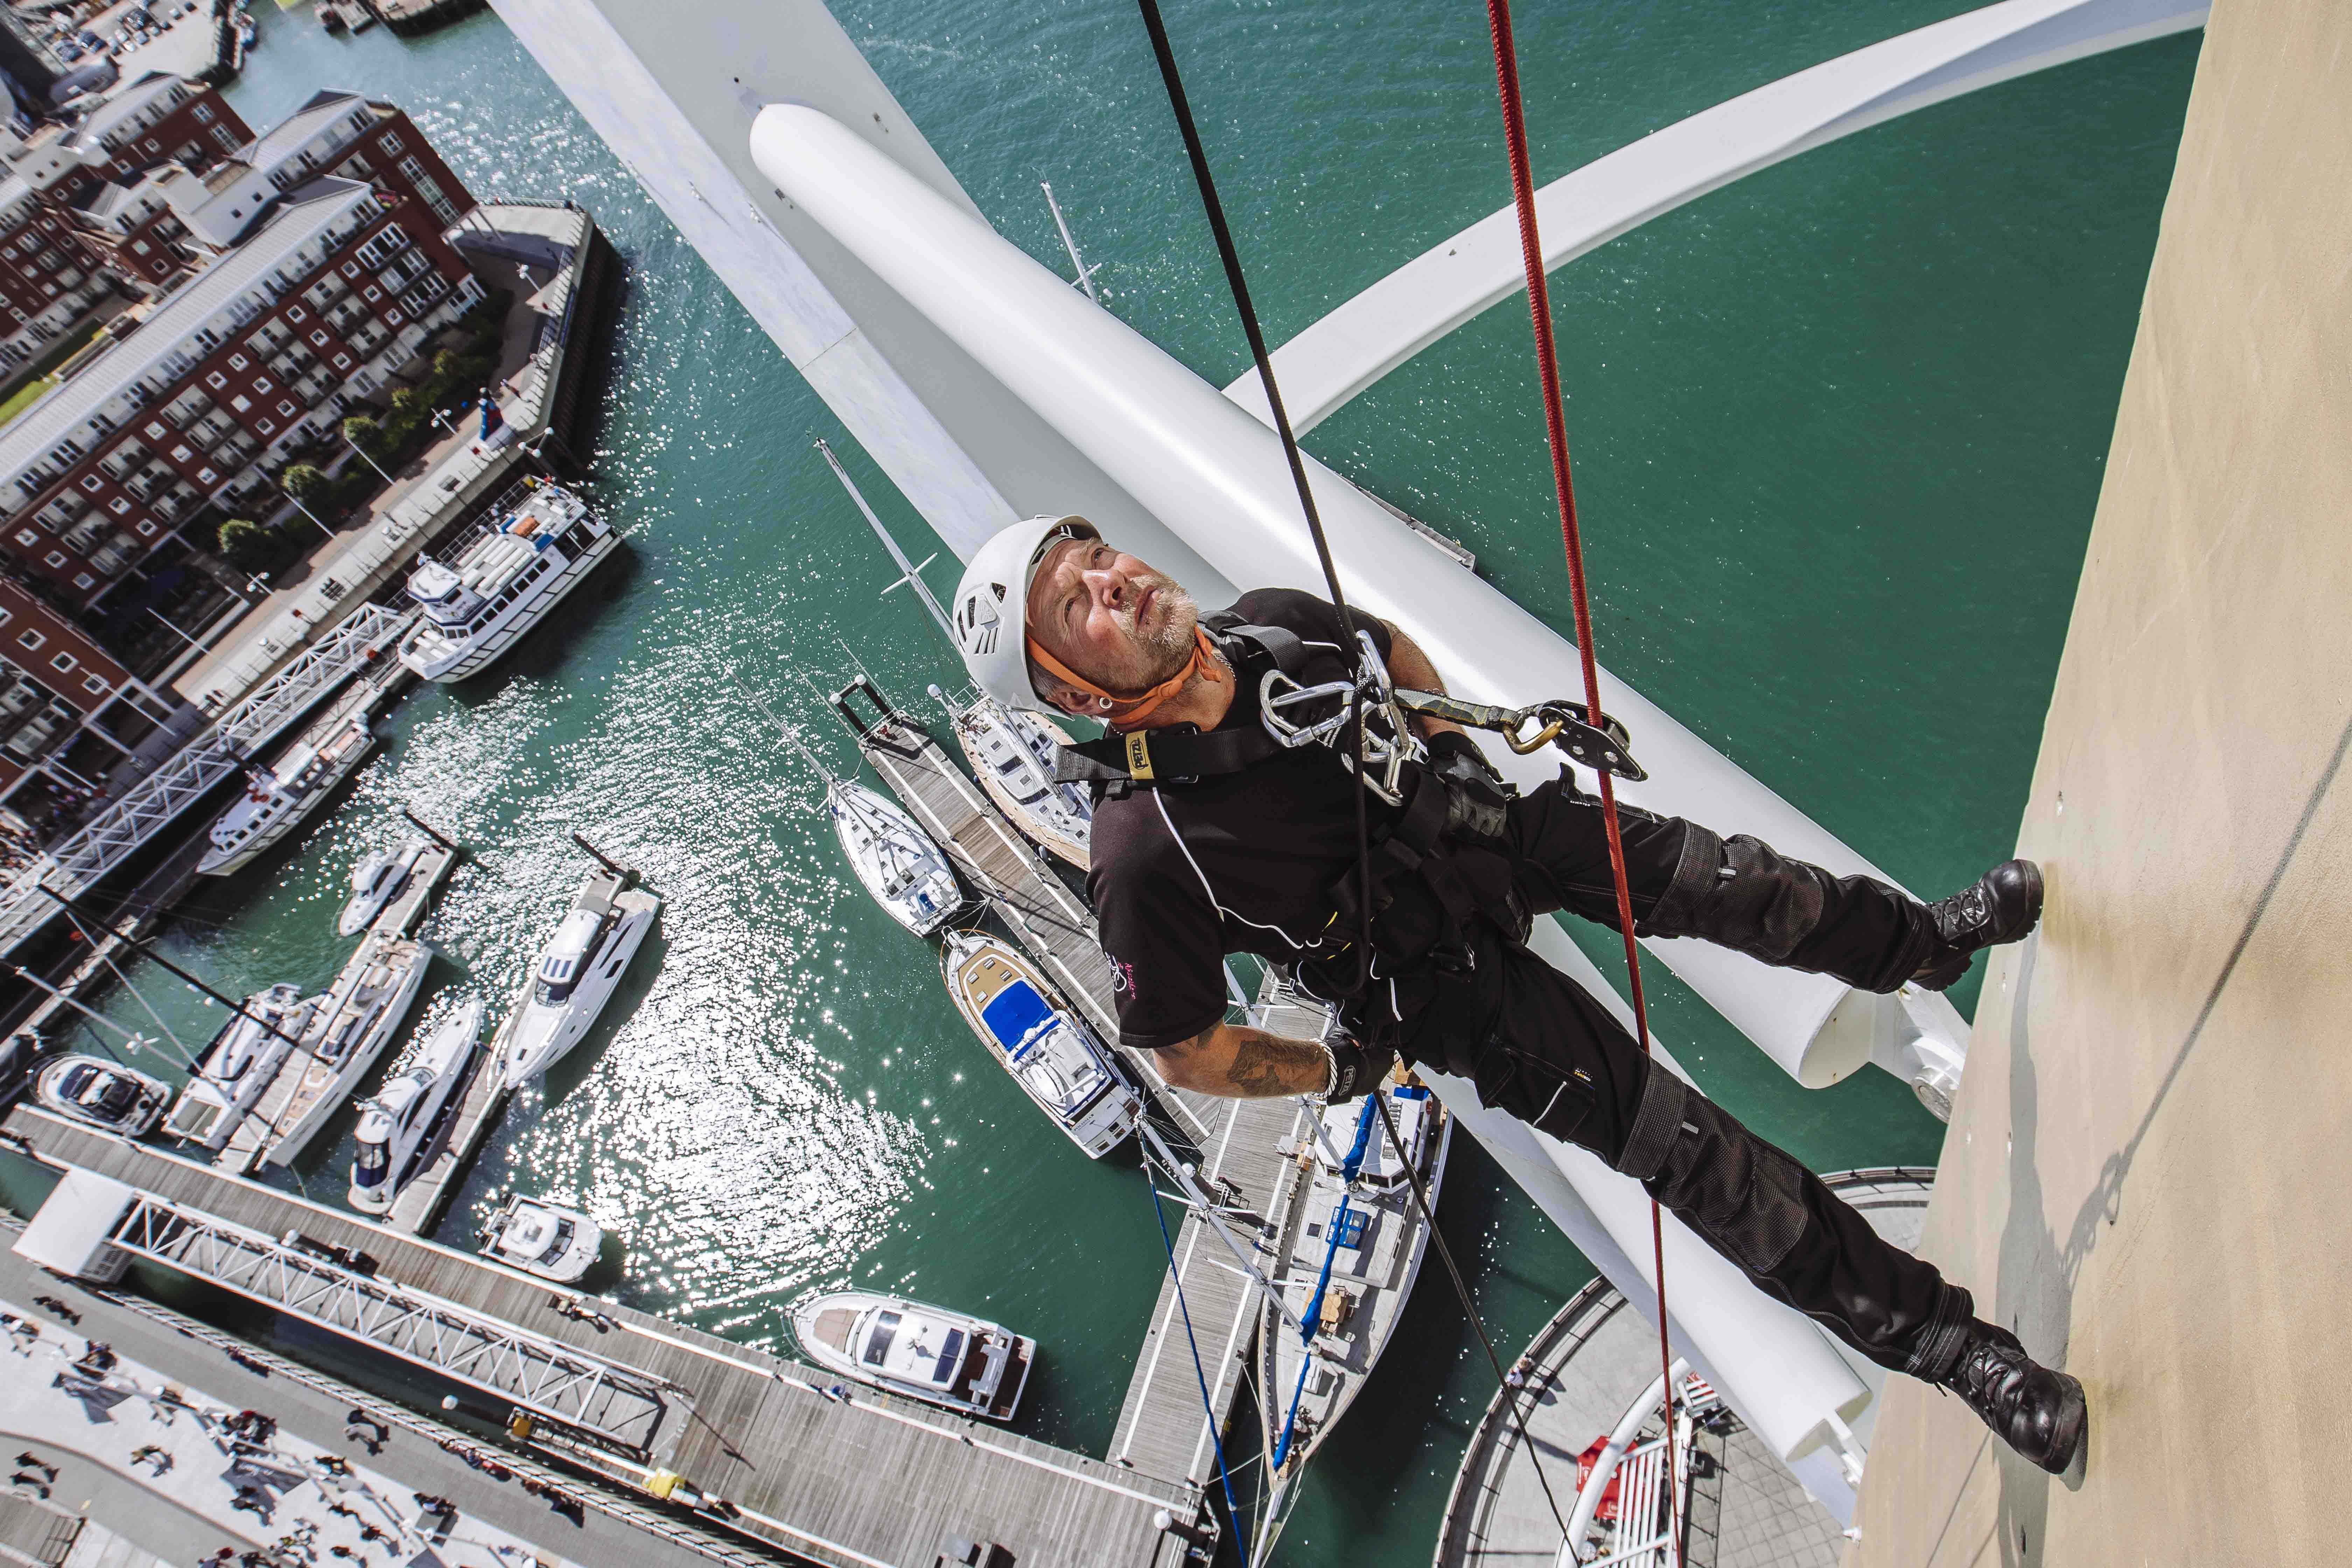 Spinnaker Challenge Alabare Homeless Charity Tower Portsmouth Event abseil